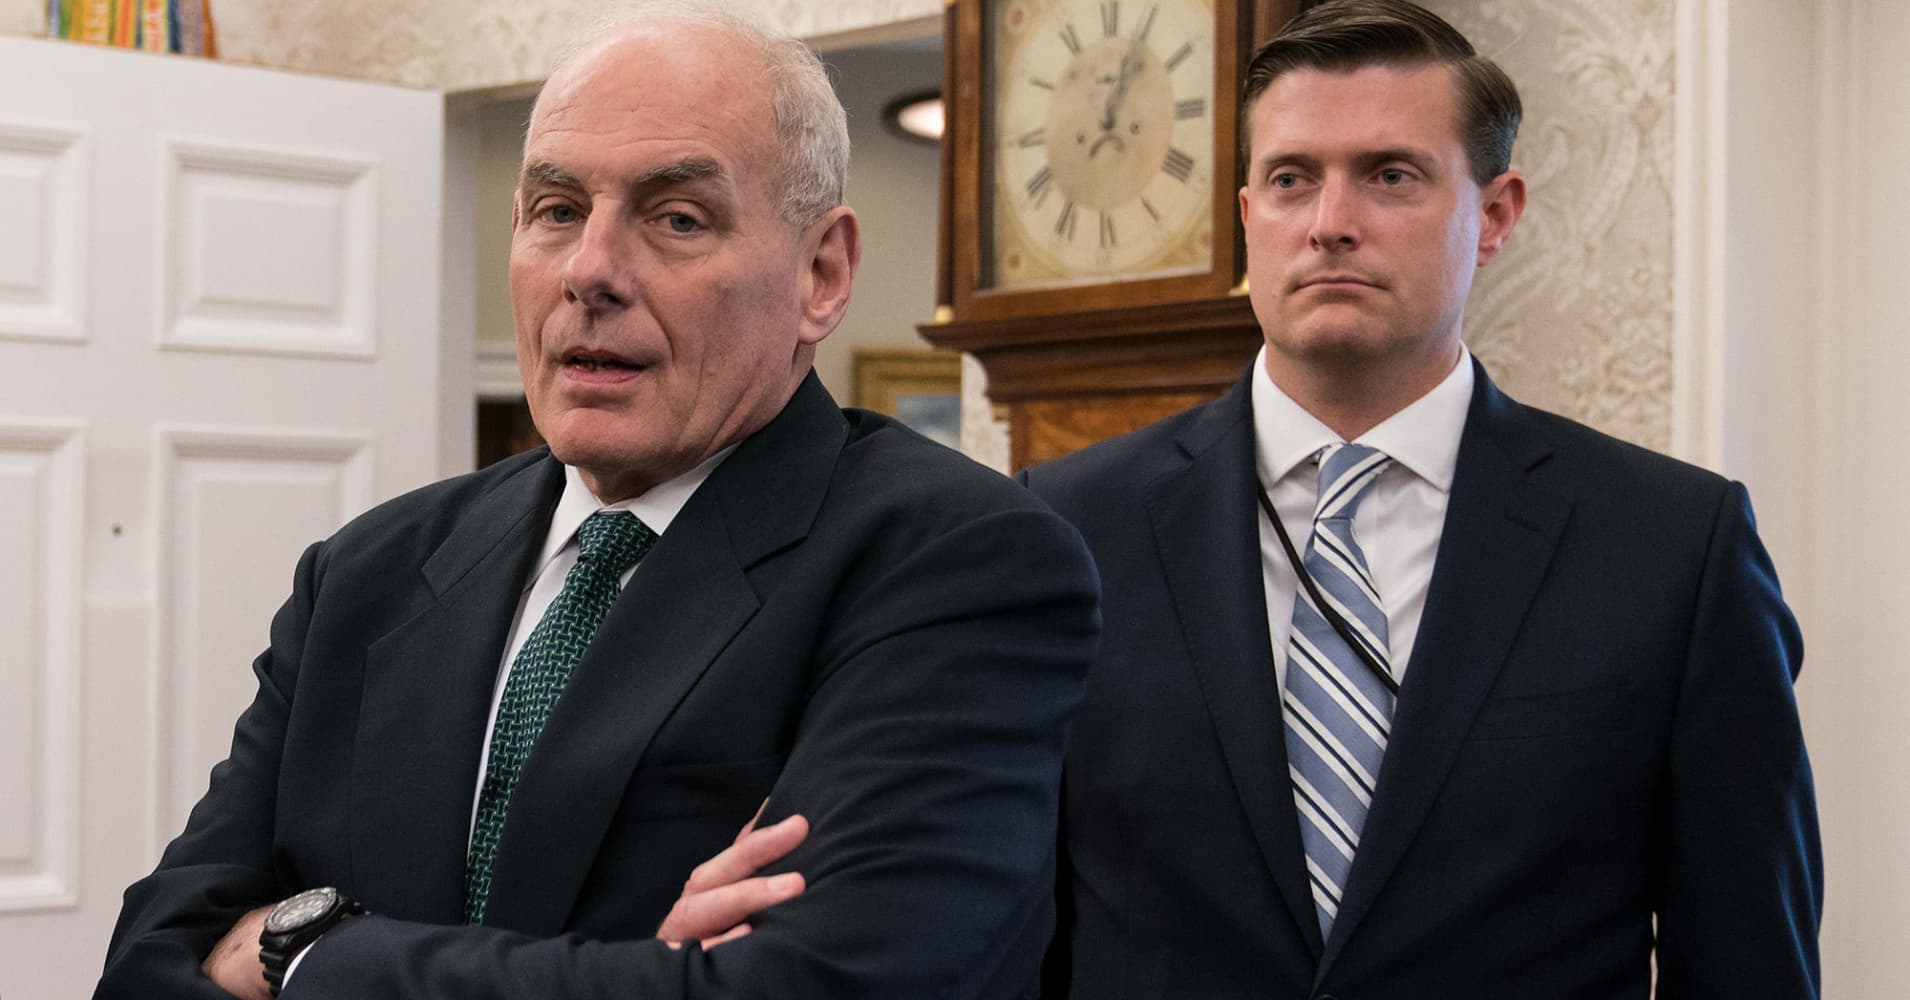 Trump still has confidence in John Kelly despite Rob Porter domestic-abuse scandal, White House says